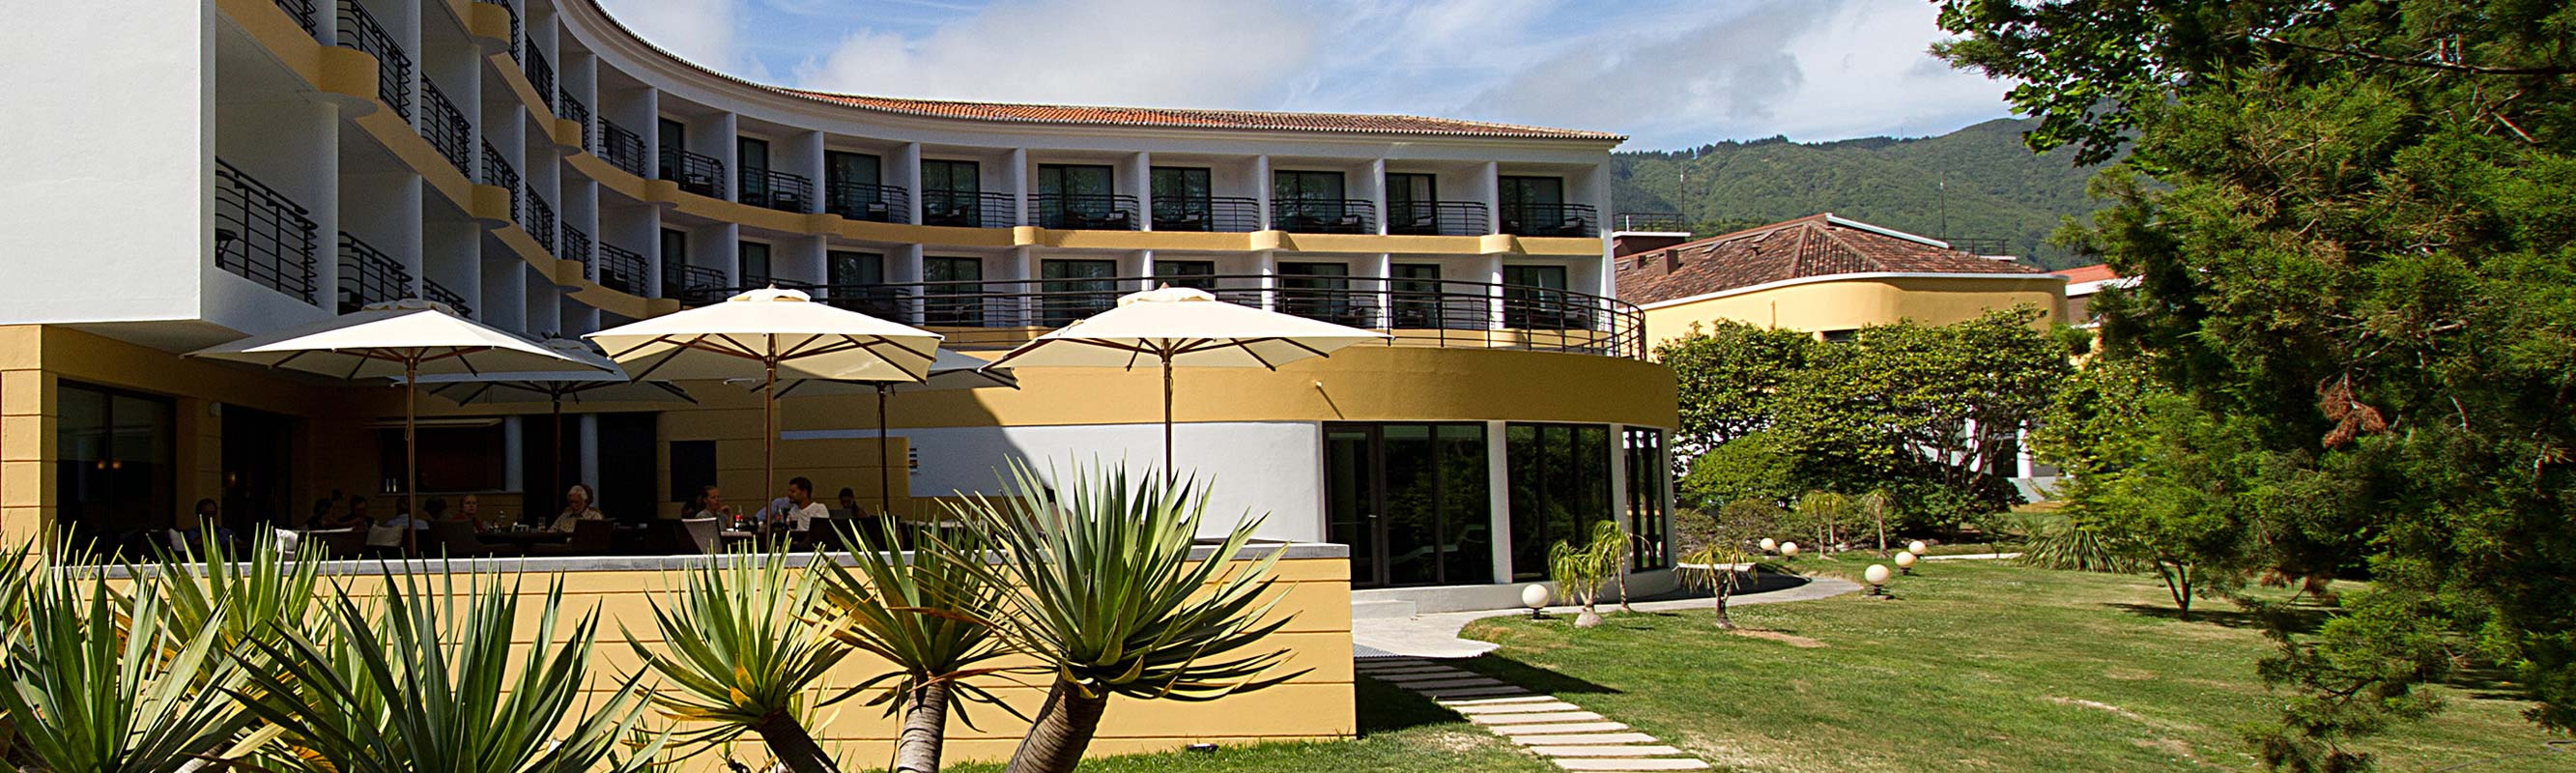 casino furnas